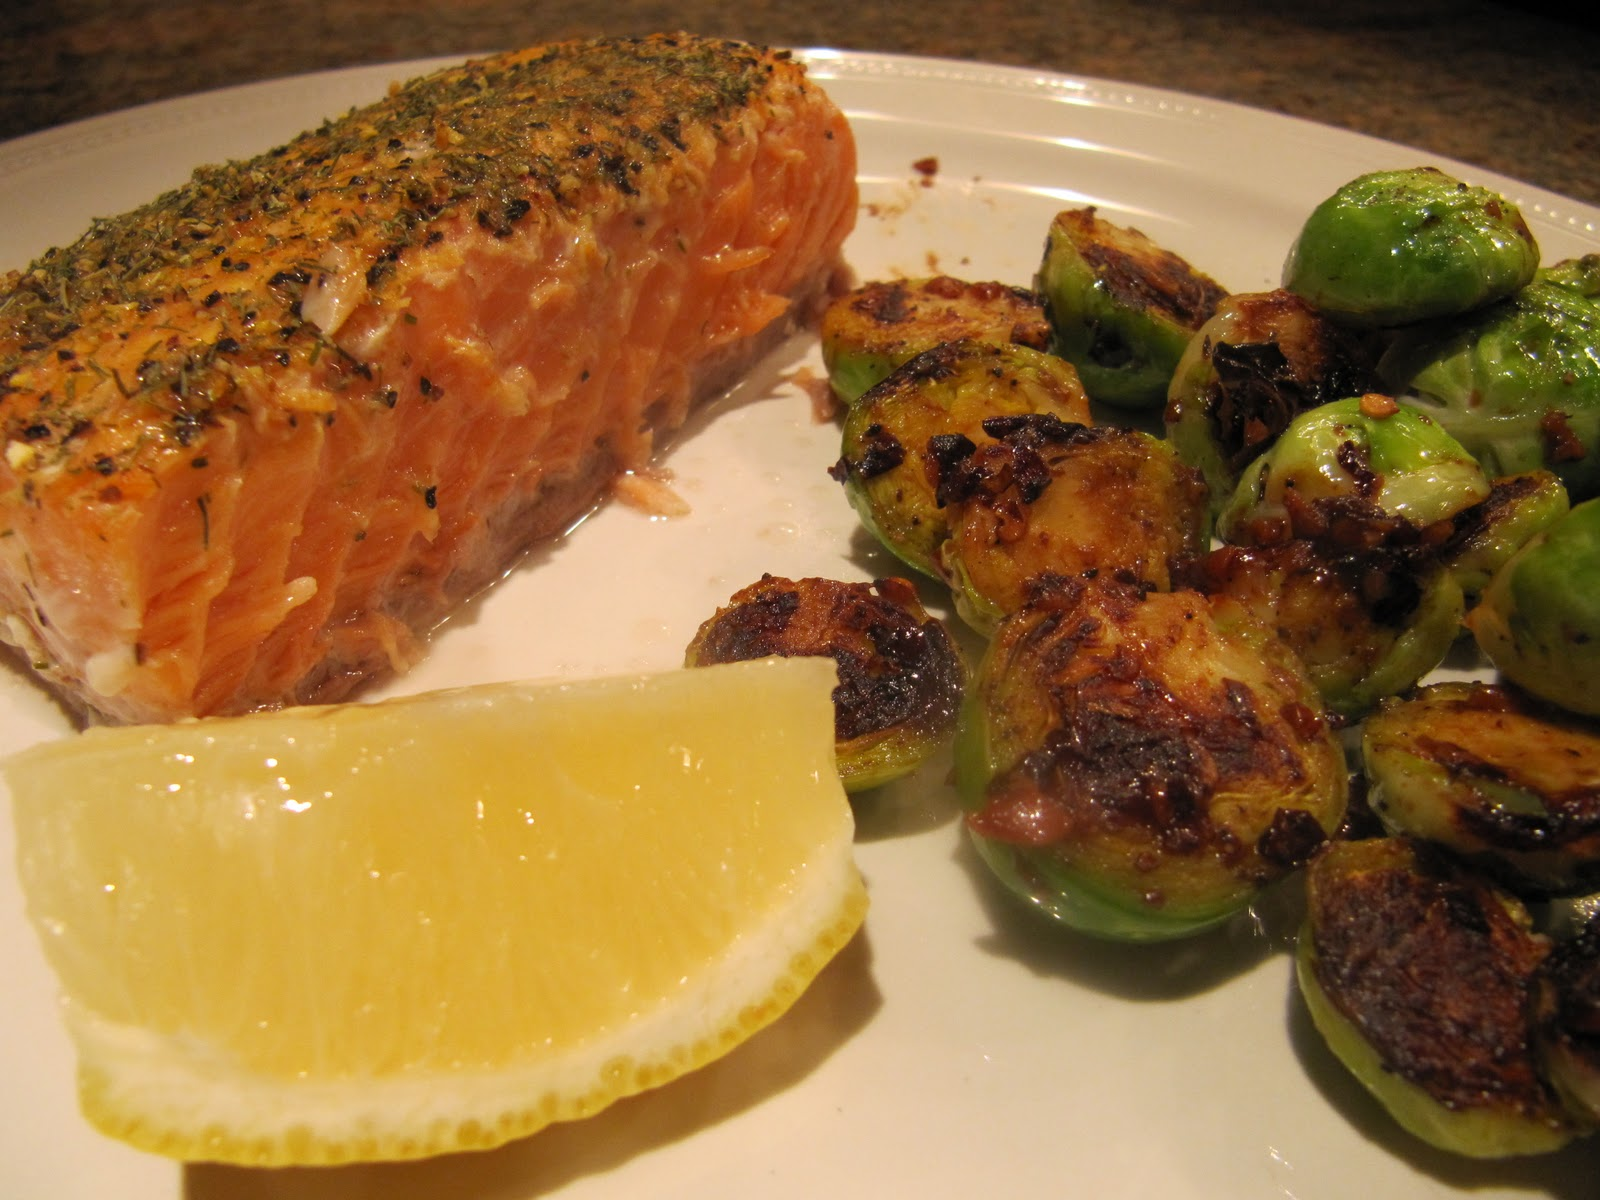 One Diva Dishing: Oven-Baked Salmon and Brussels Sprouts ...